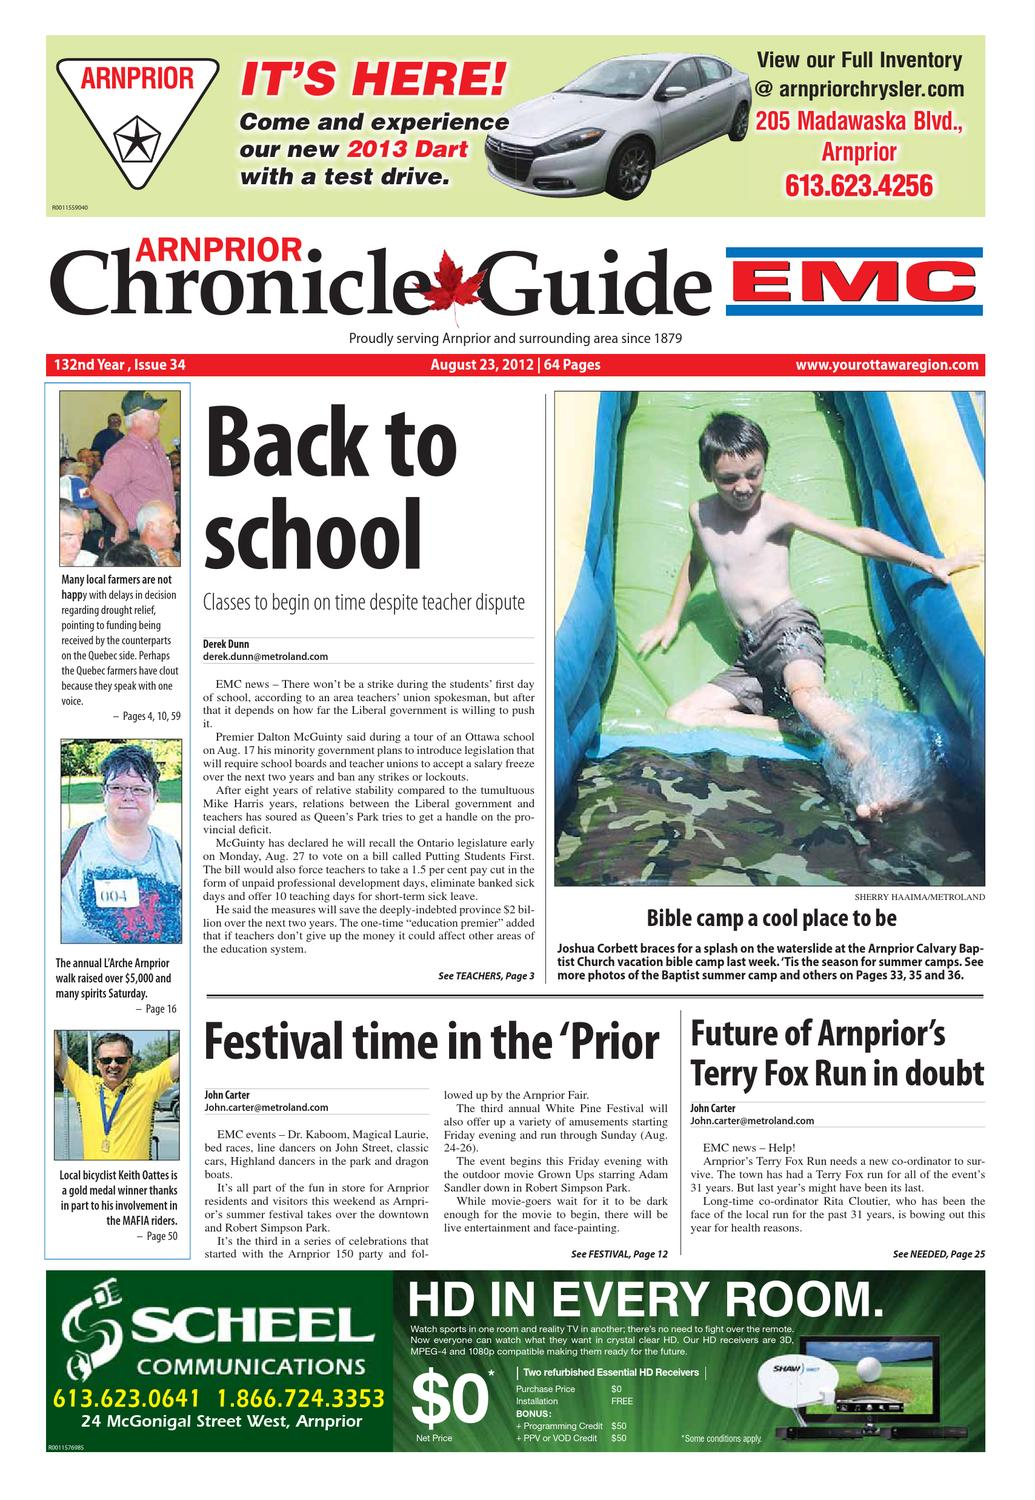 a5c061f20b430 Arnprior Chronicle Guide EMC by Metroland East - Arnprior Chronicle-Guide -  issuu